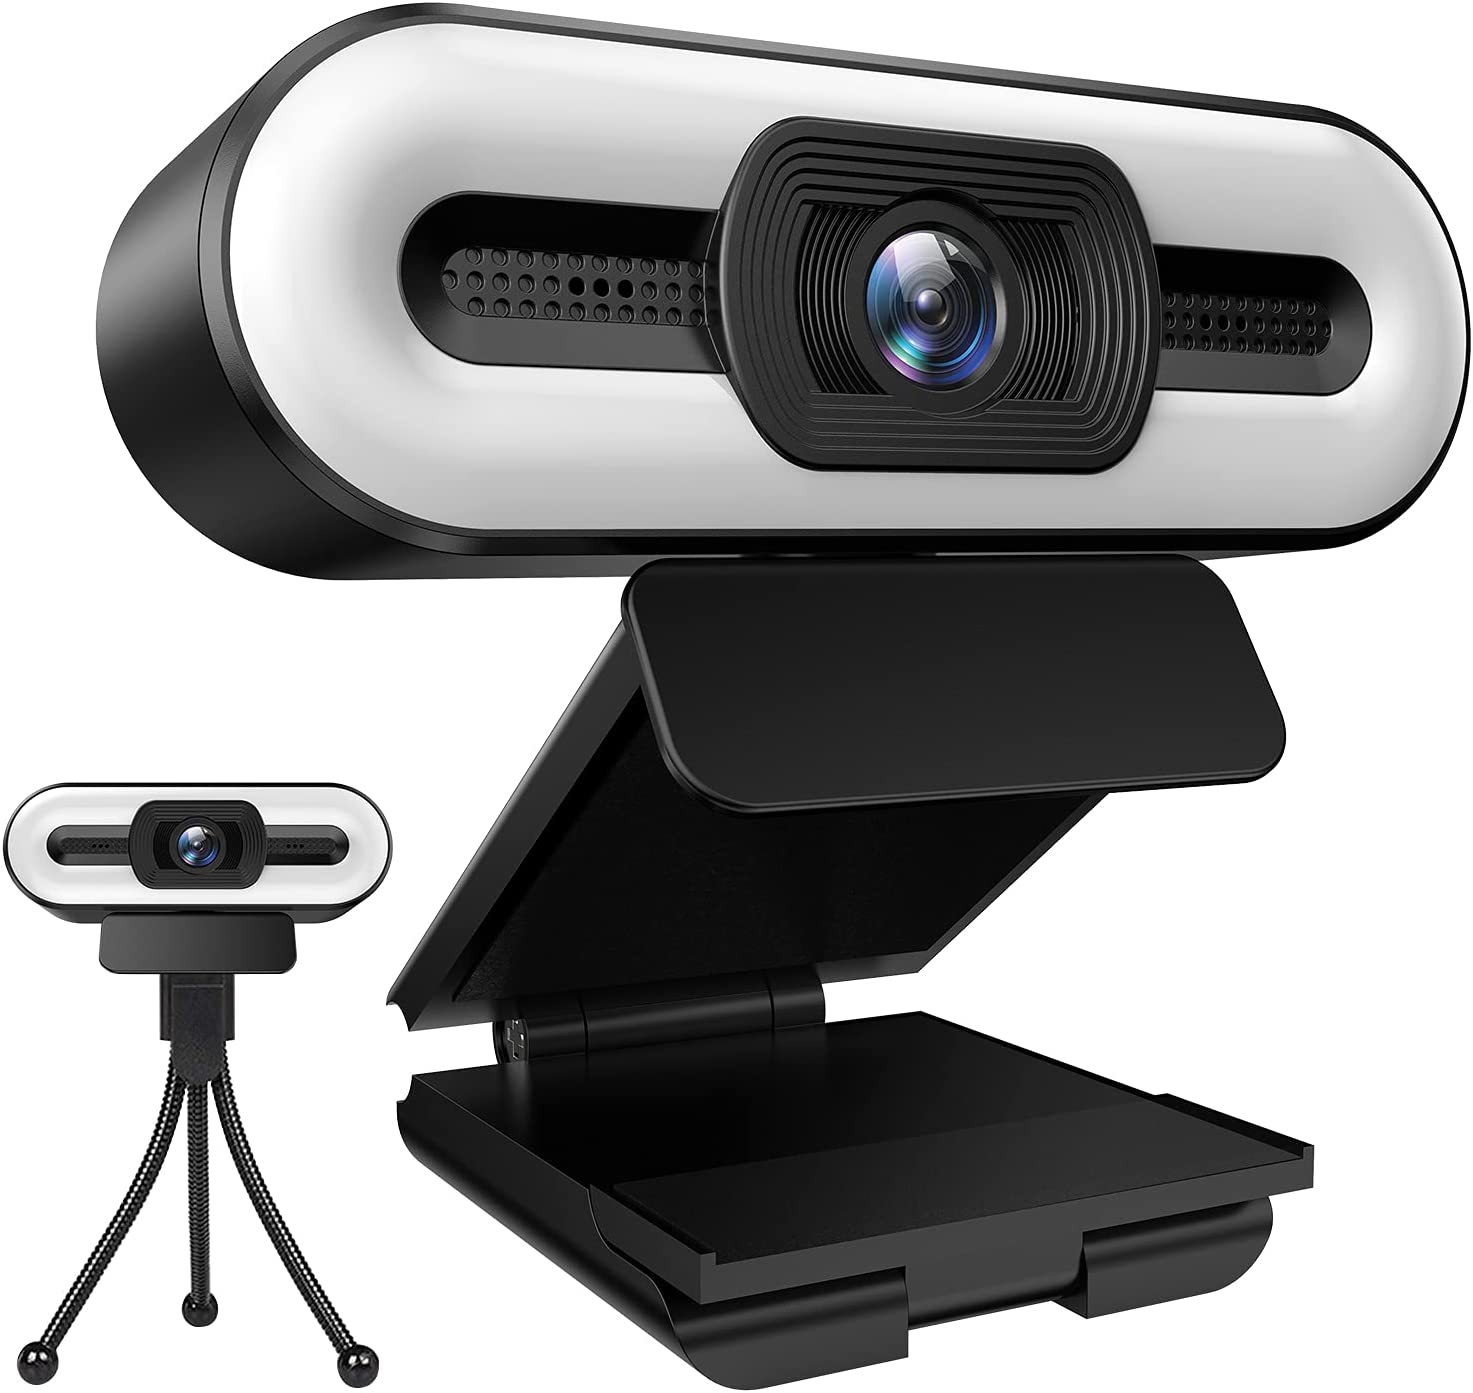 [2021 New Version] 1080P Webcam with Microphone and Ring Light,3-Level Brightness and 3-Color Light,Plug and Play,Streaming USB Webcam,Web Camera for PC Desktop Laptop MAC,Zoom Skype YouTube